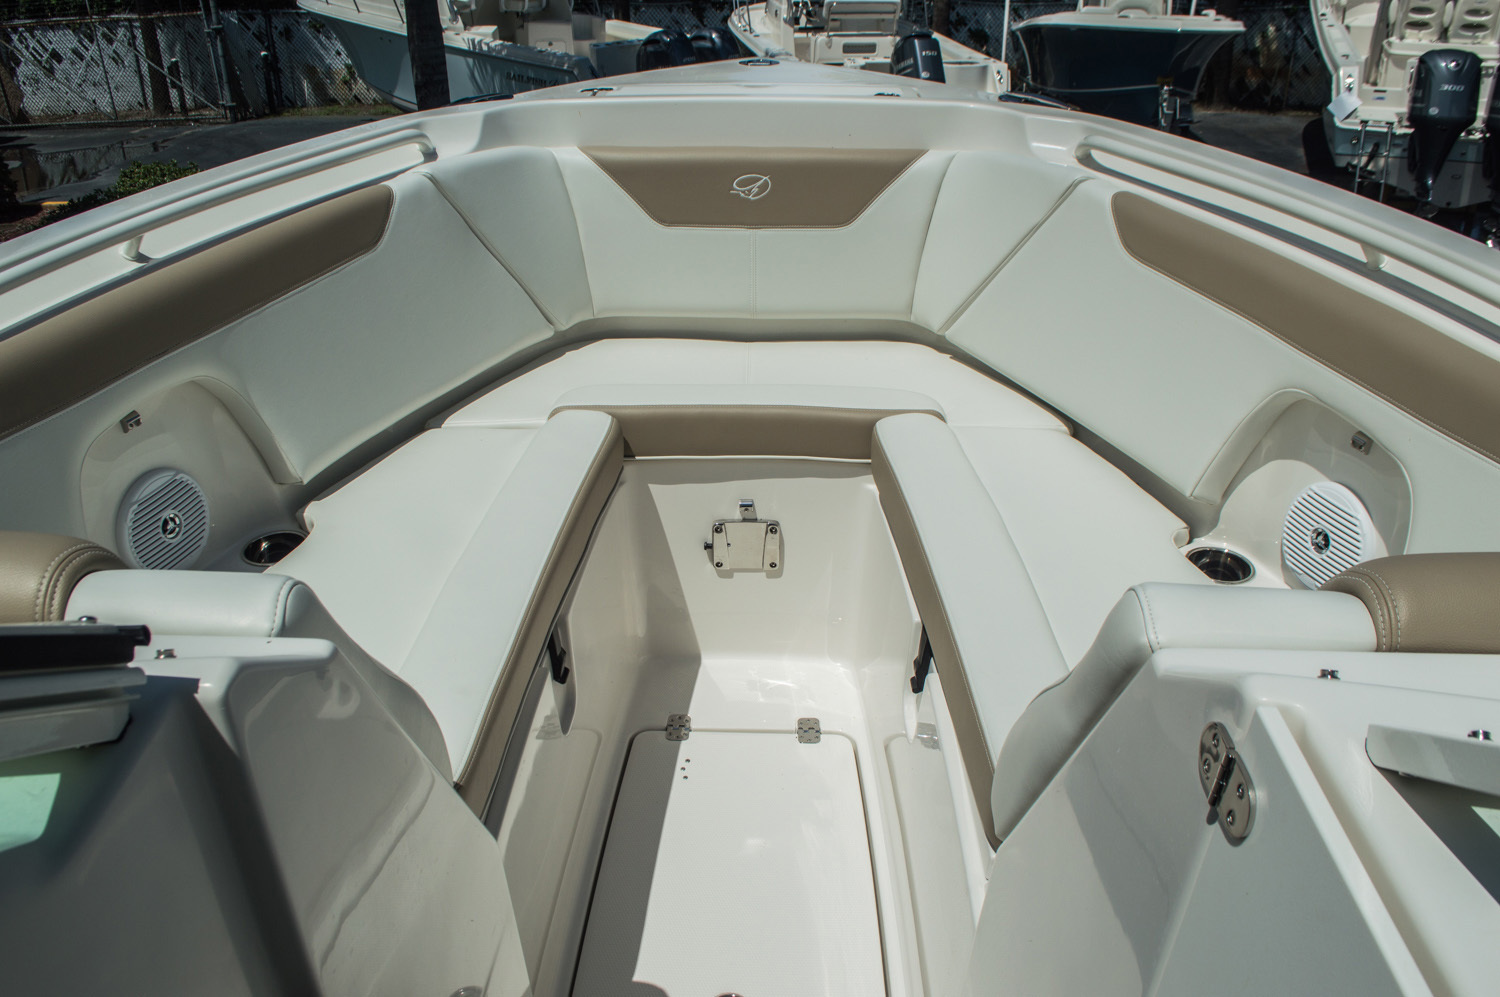 Thumbnail 10 for New 2016 Sailfish 275 Dual Console boat for sale in West Palm Beach, FL